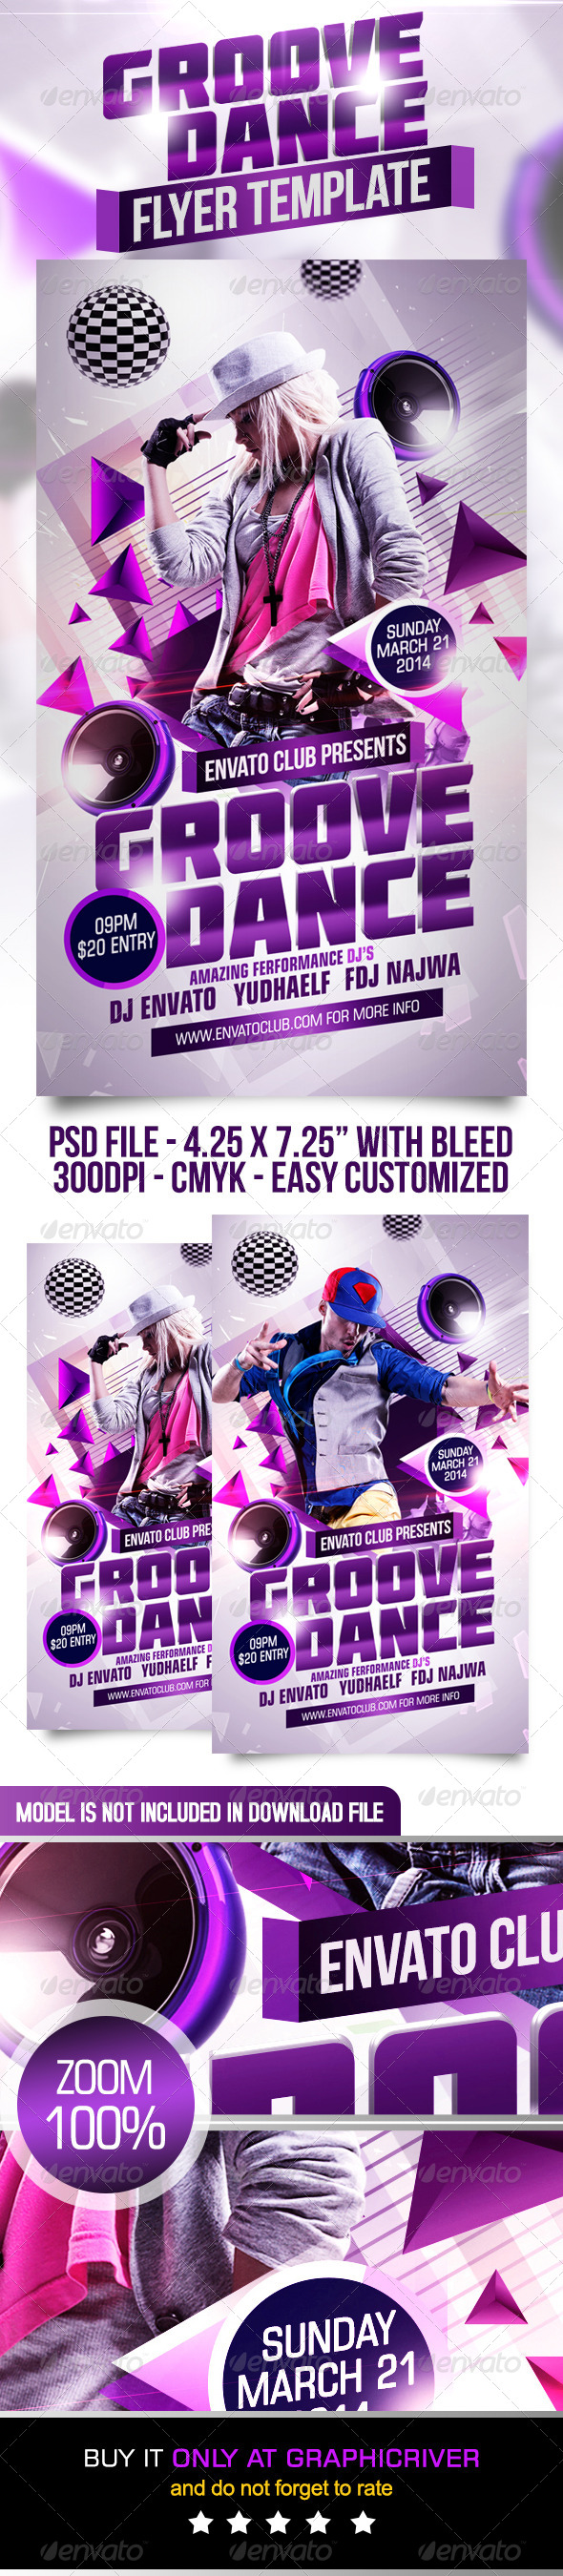 GraphicRiver Groove Dance Flyer Template 7127328